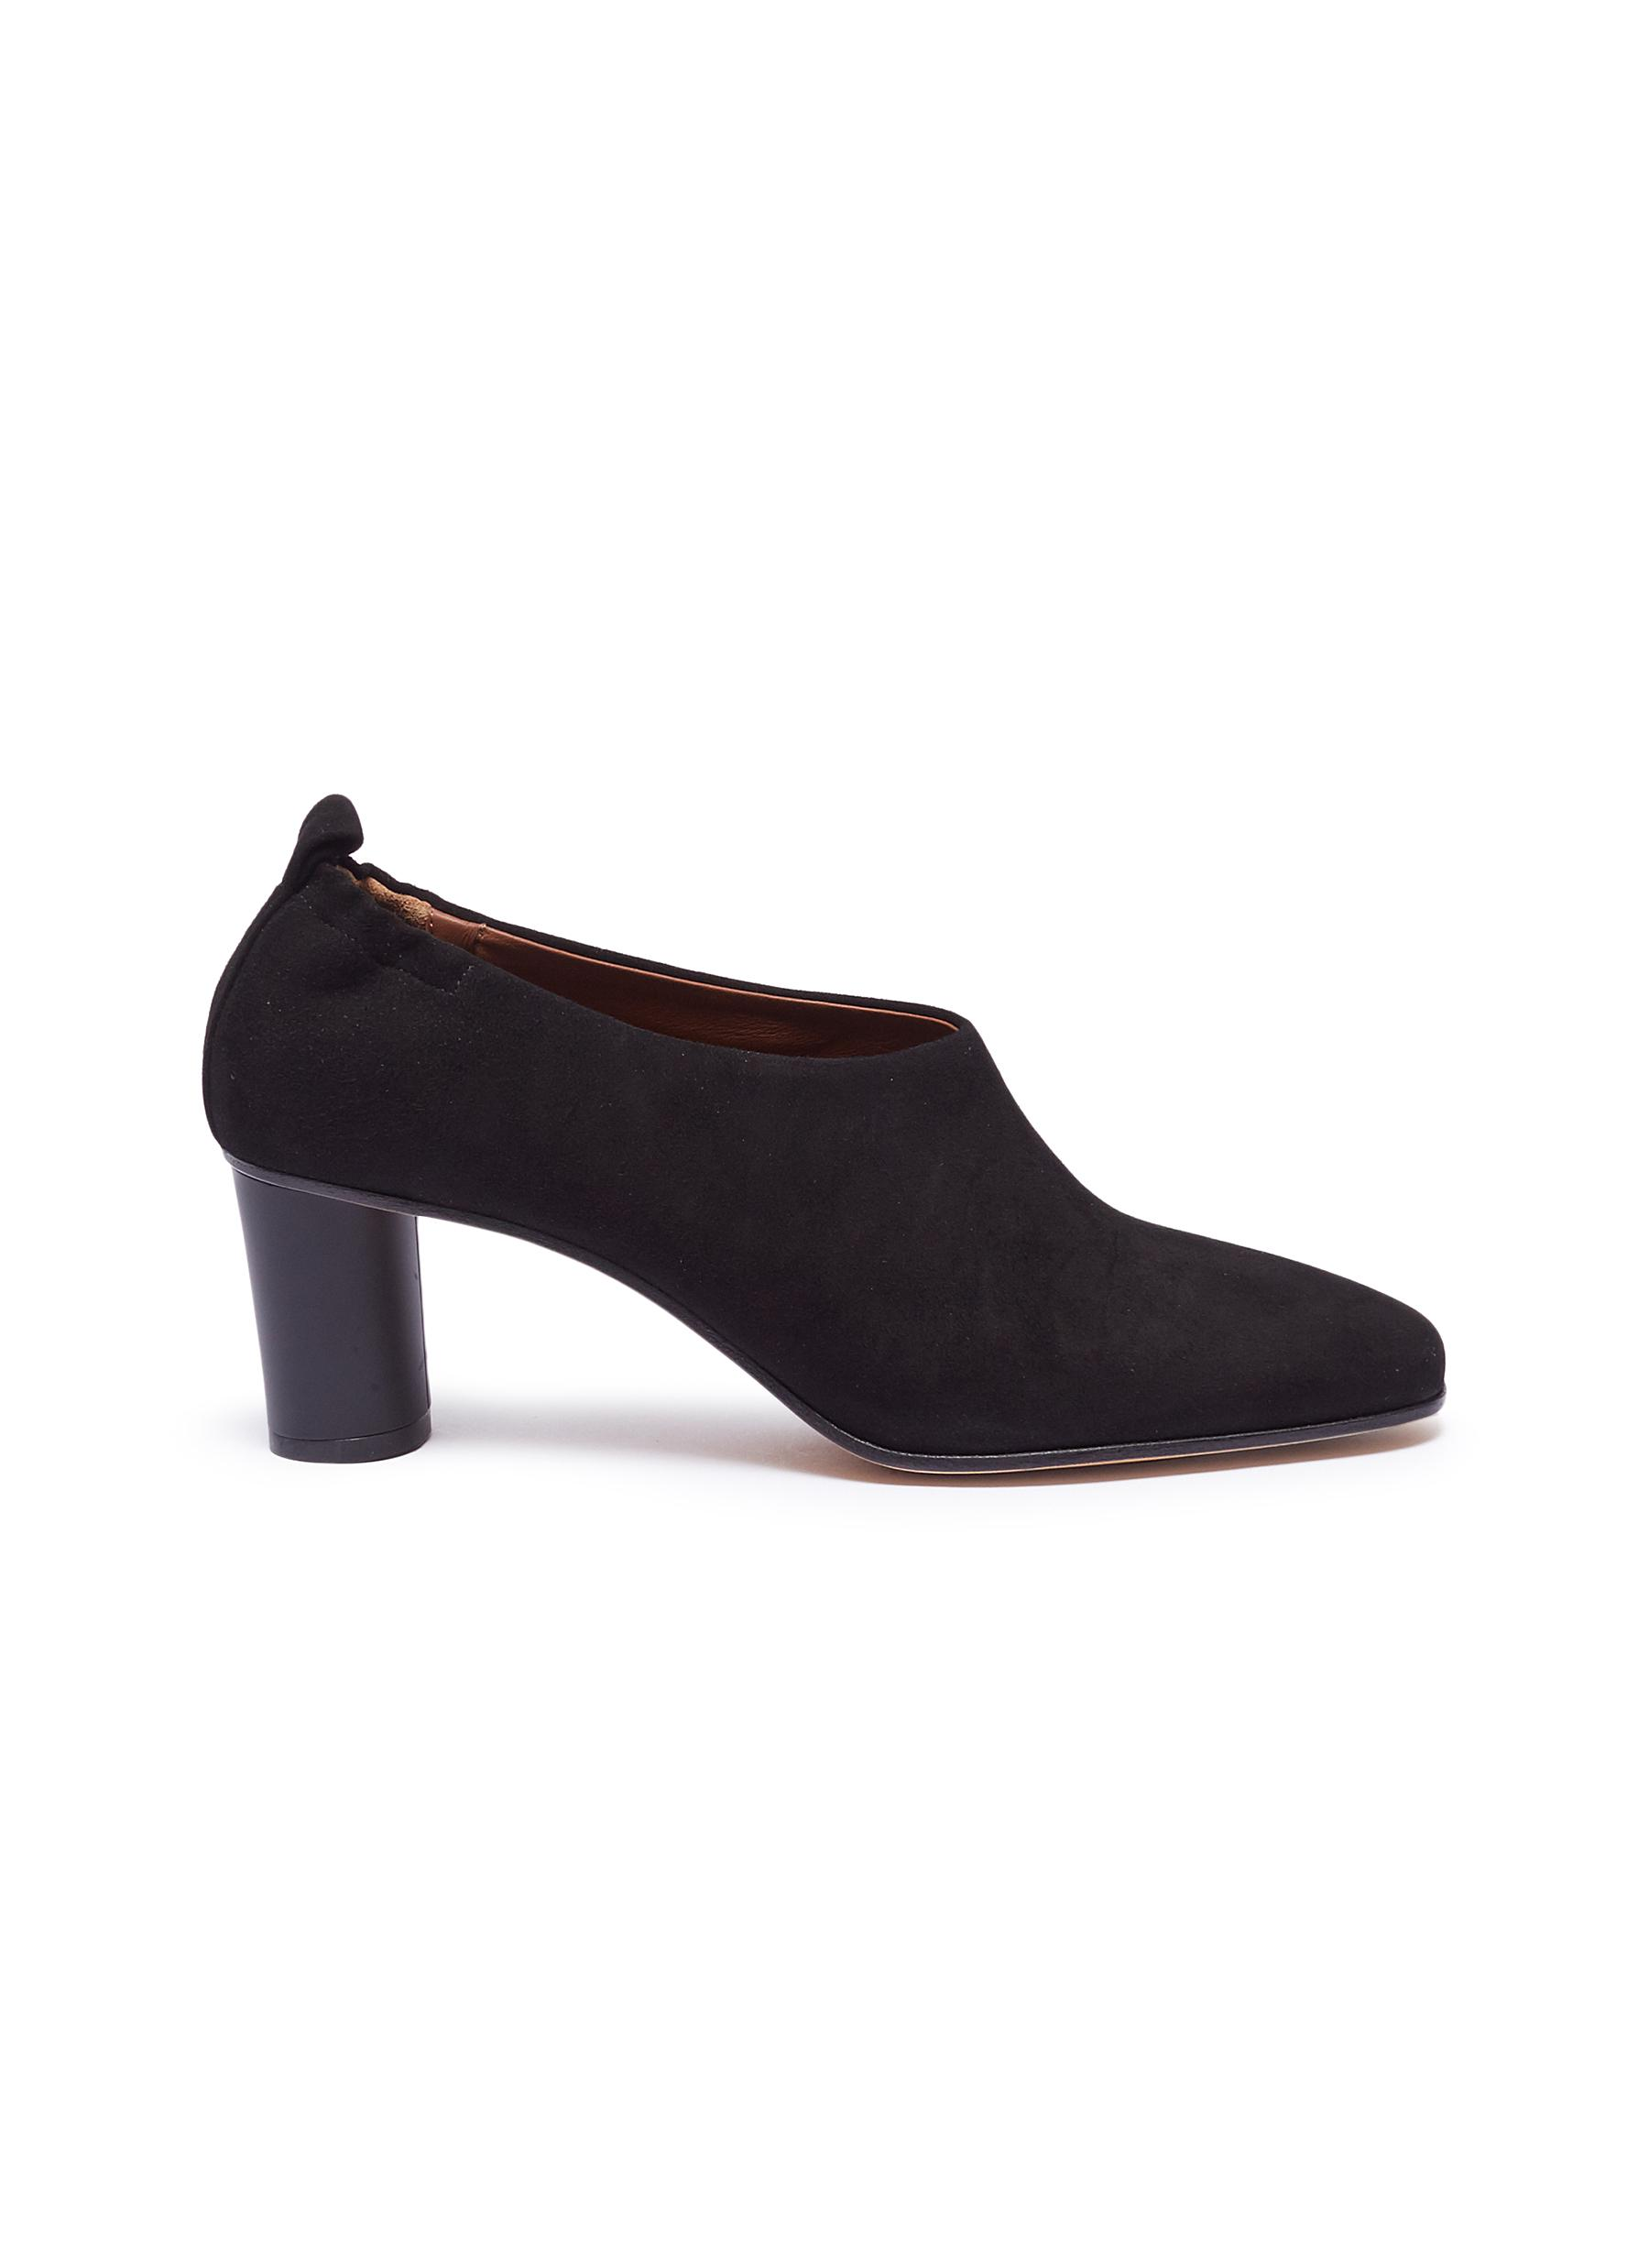 Micol choked-up suede pumps by Gray Matters